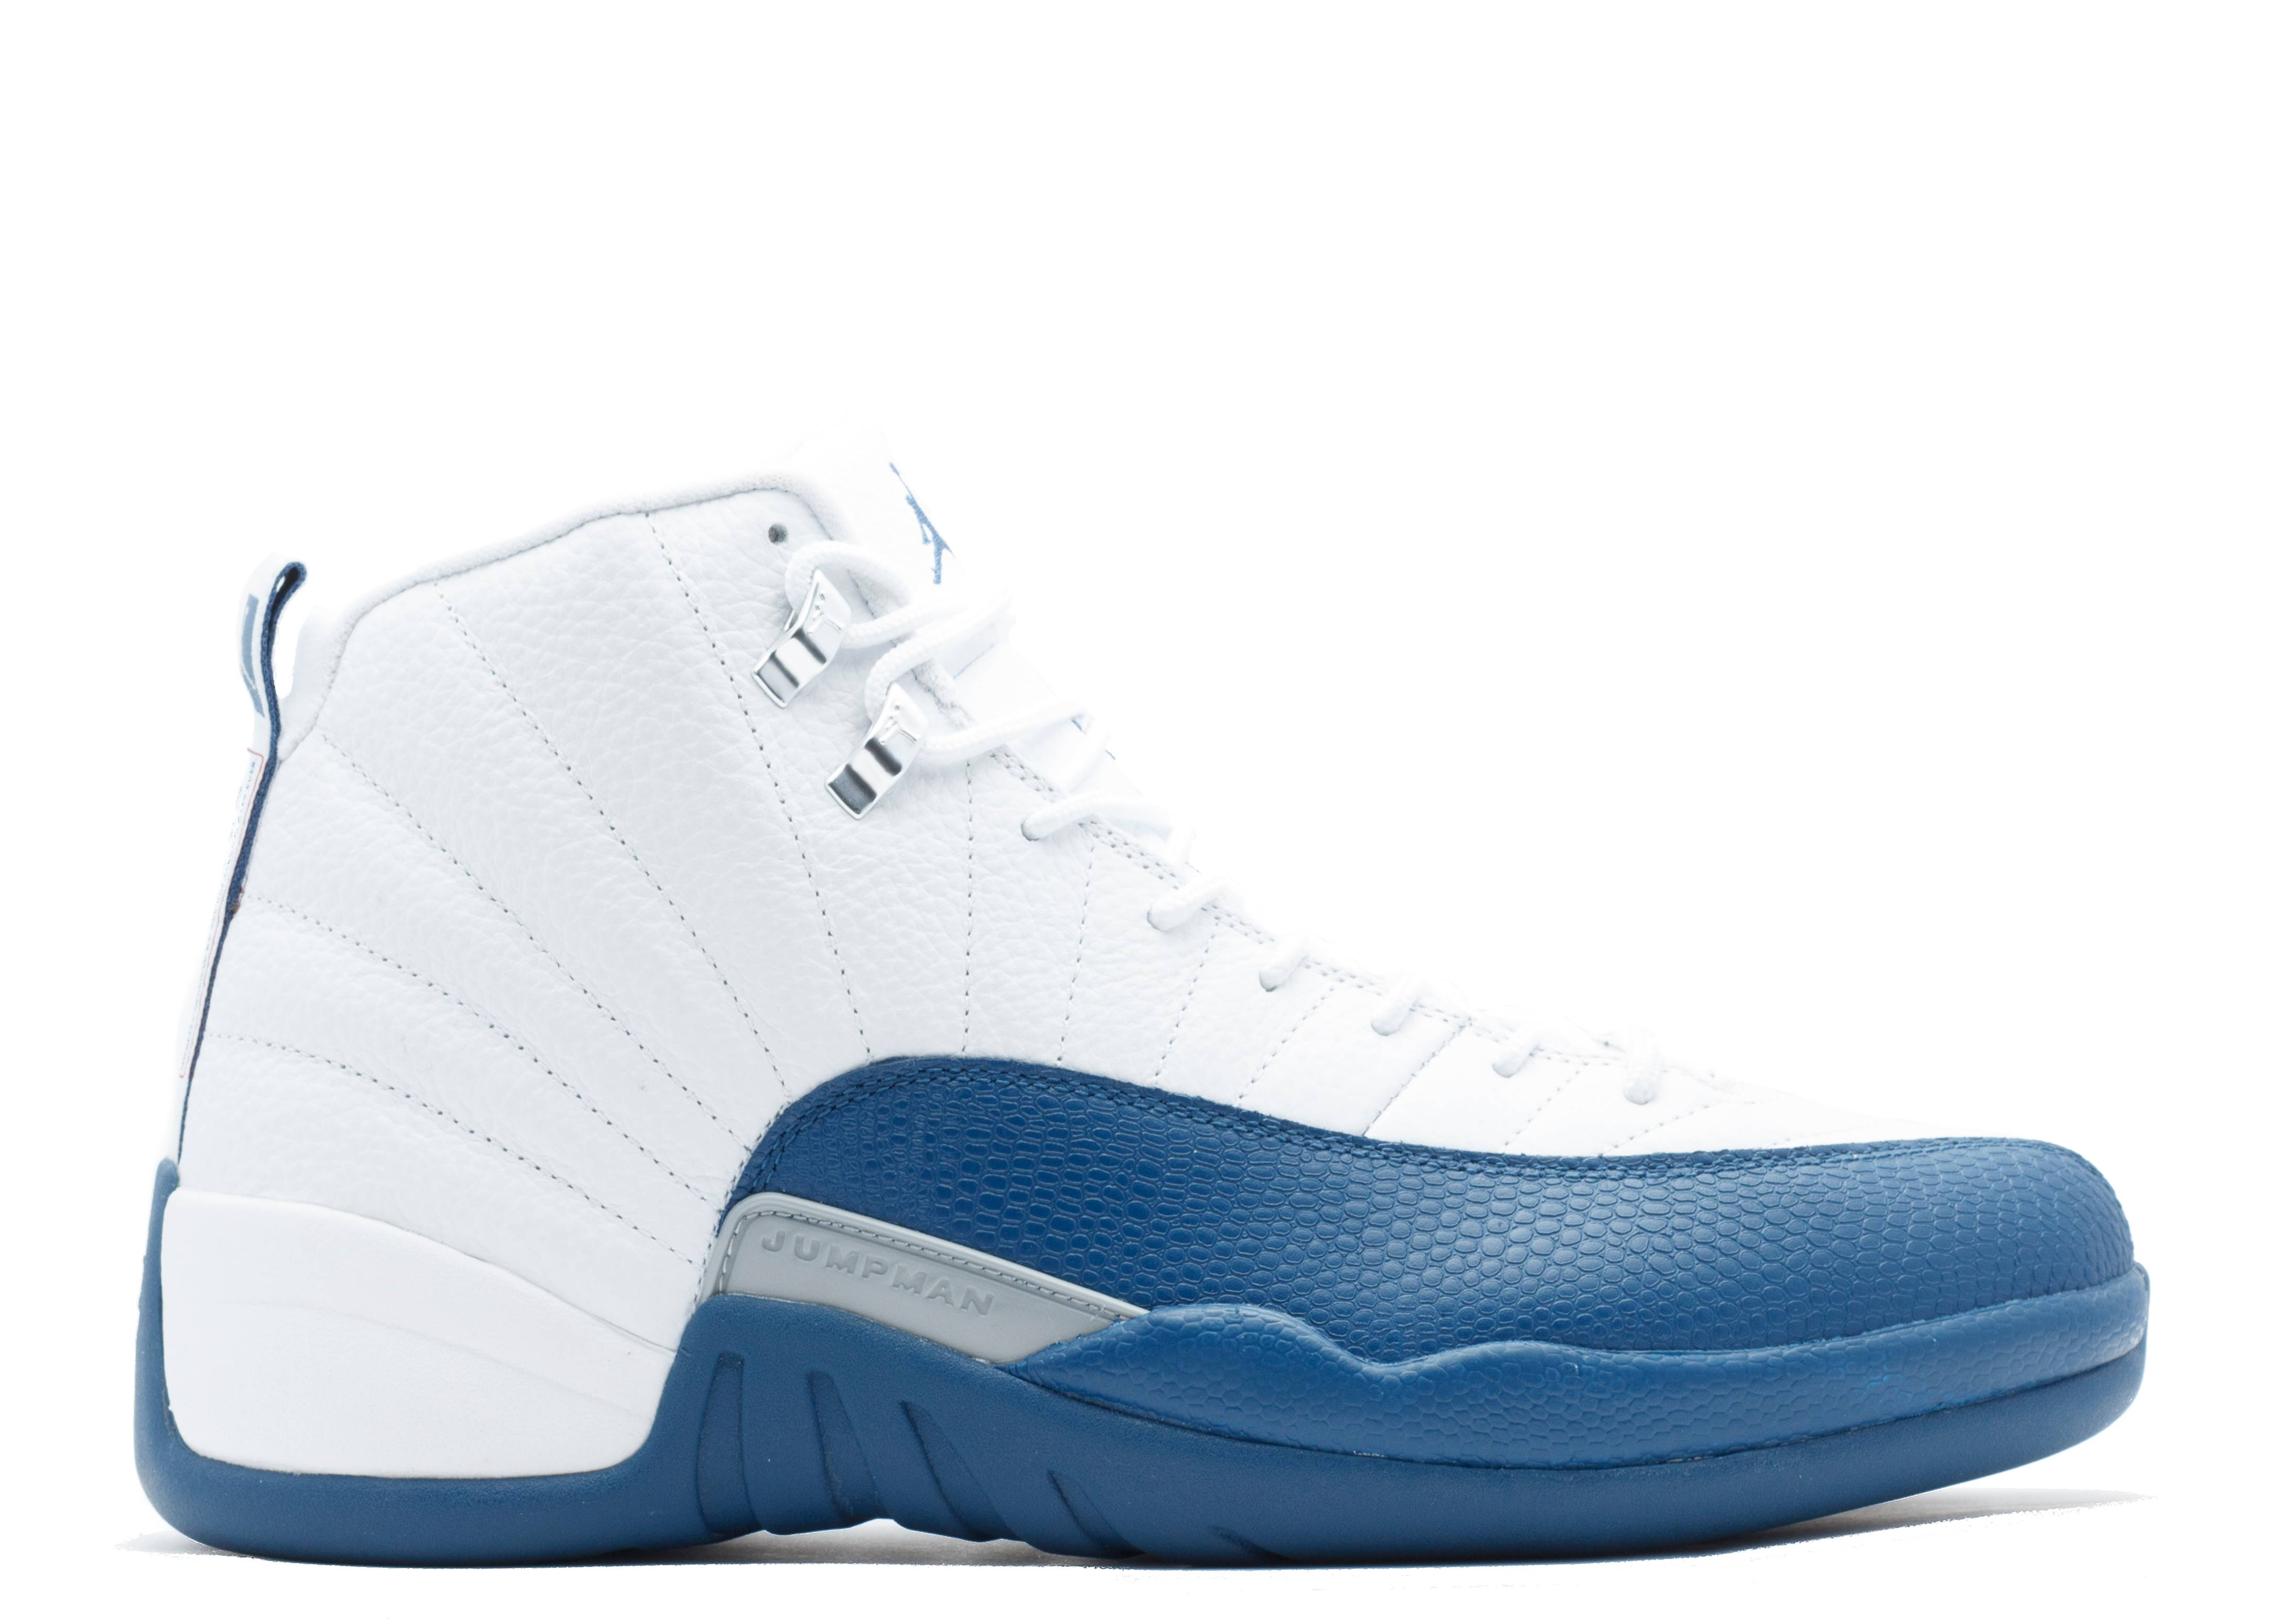 63611742989-air-jordan-12-retro-french-blue-white-frnch-bl-mtllc-slvr-vrst-012375_1.jpg